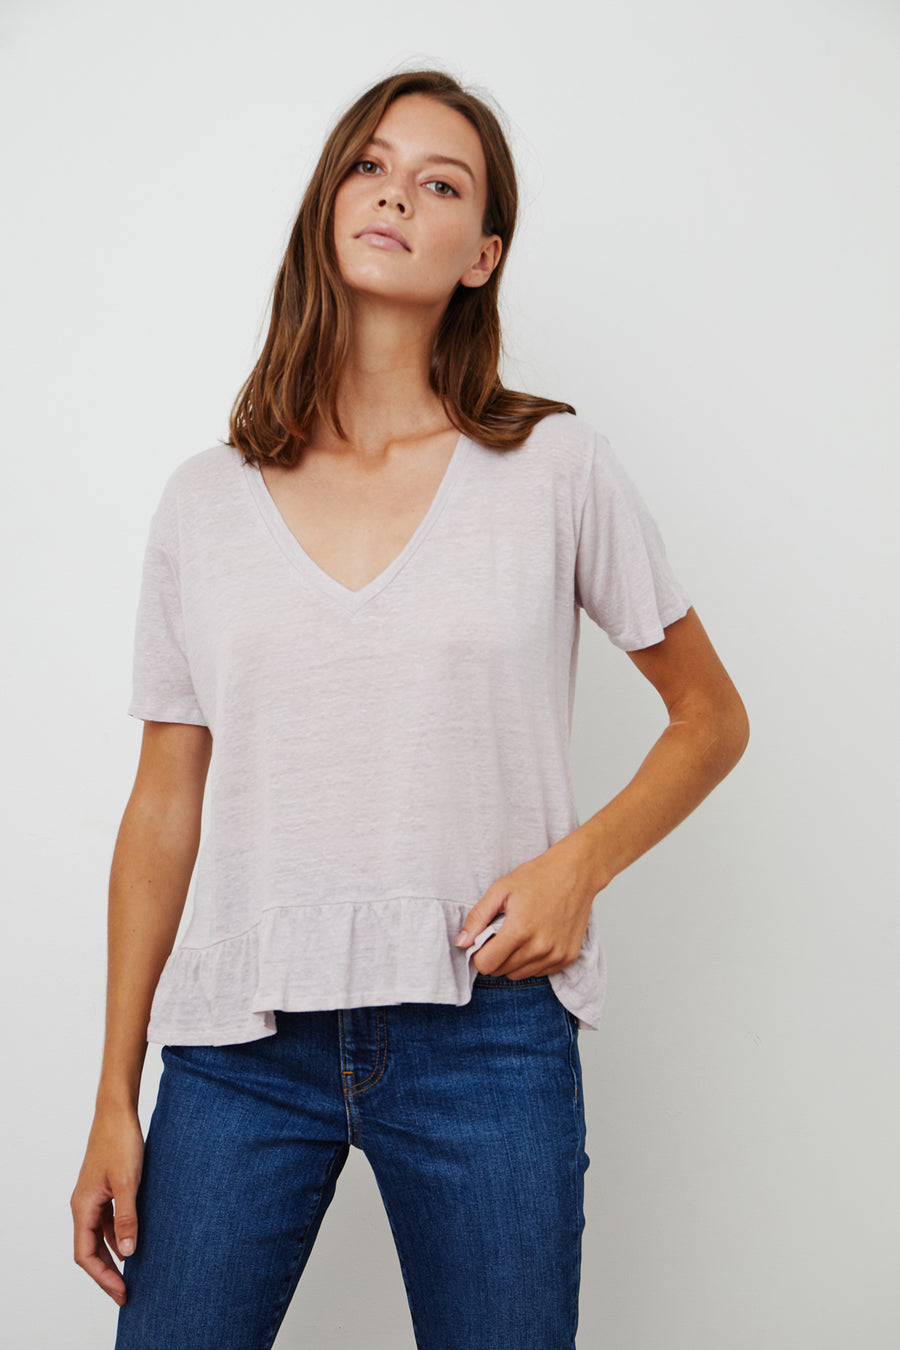 LINAH TOP - WHITE